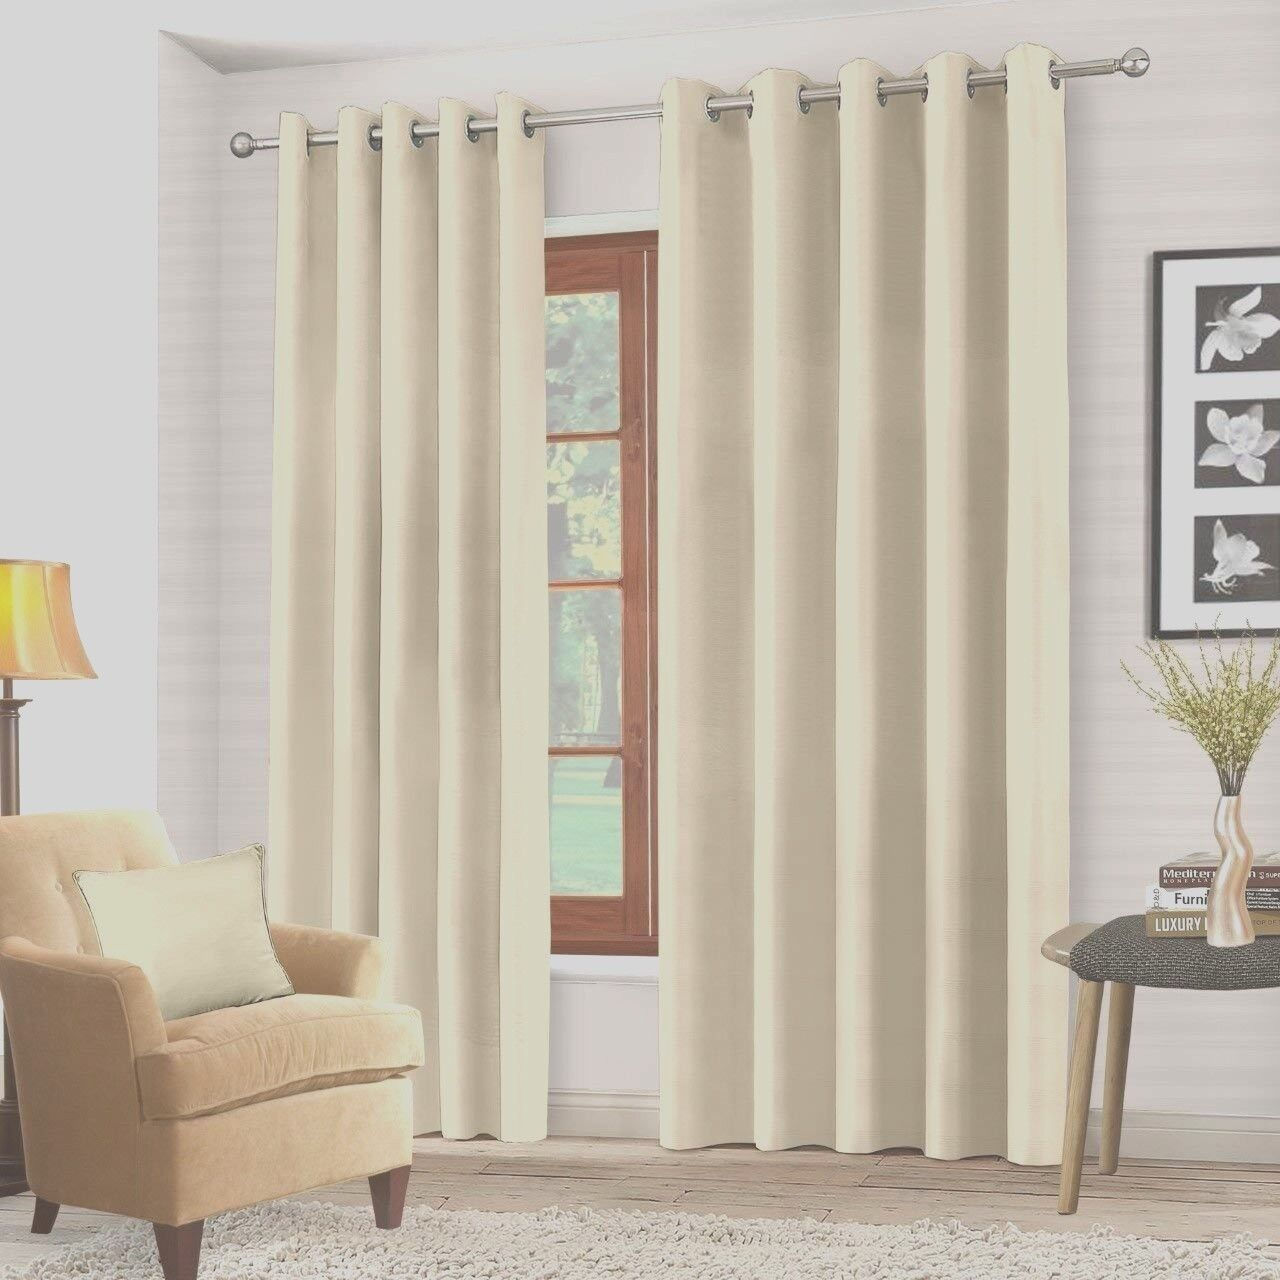 Blackout Ring Top Curtains In Cream Bedroom Living Room Curtains 66 X 54 Ebay